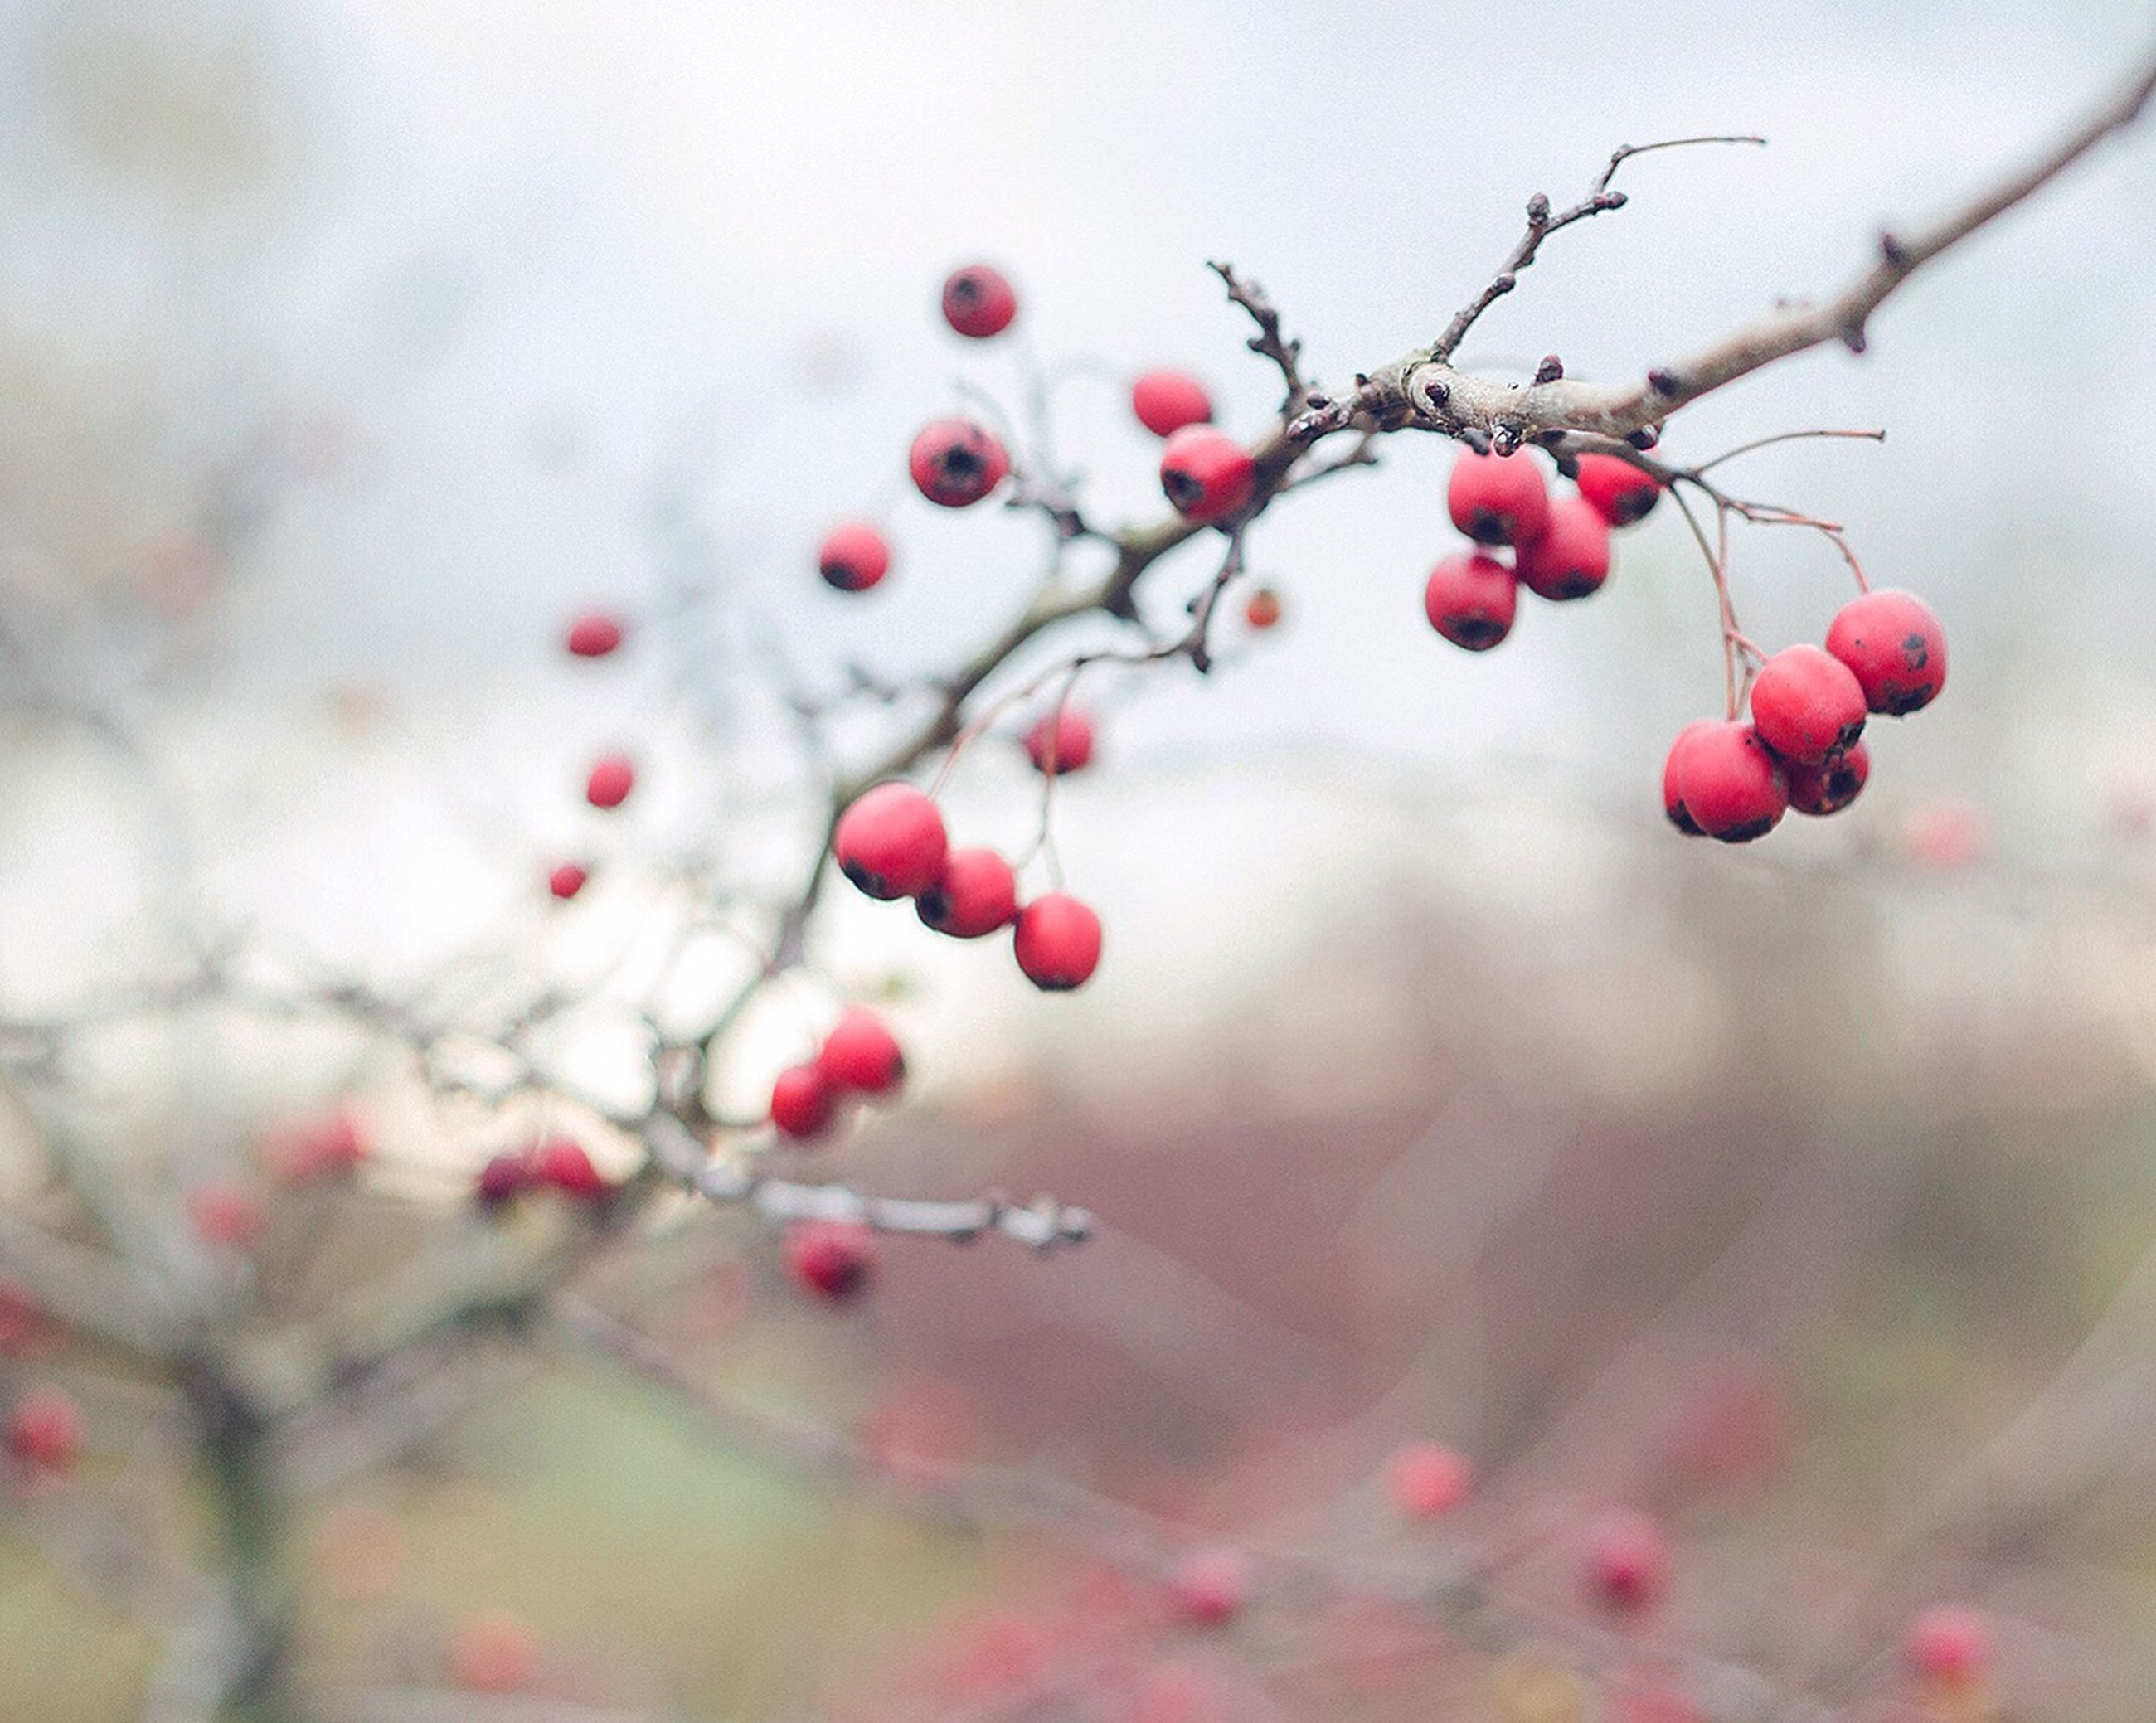 fruit, nature, close-up, growth, tree, red, focus on foreground, outdoors, no people, day, freshness, beauty in nature, rose hip, branch, rowanberry